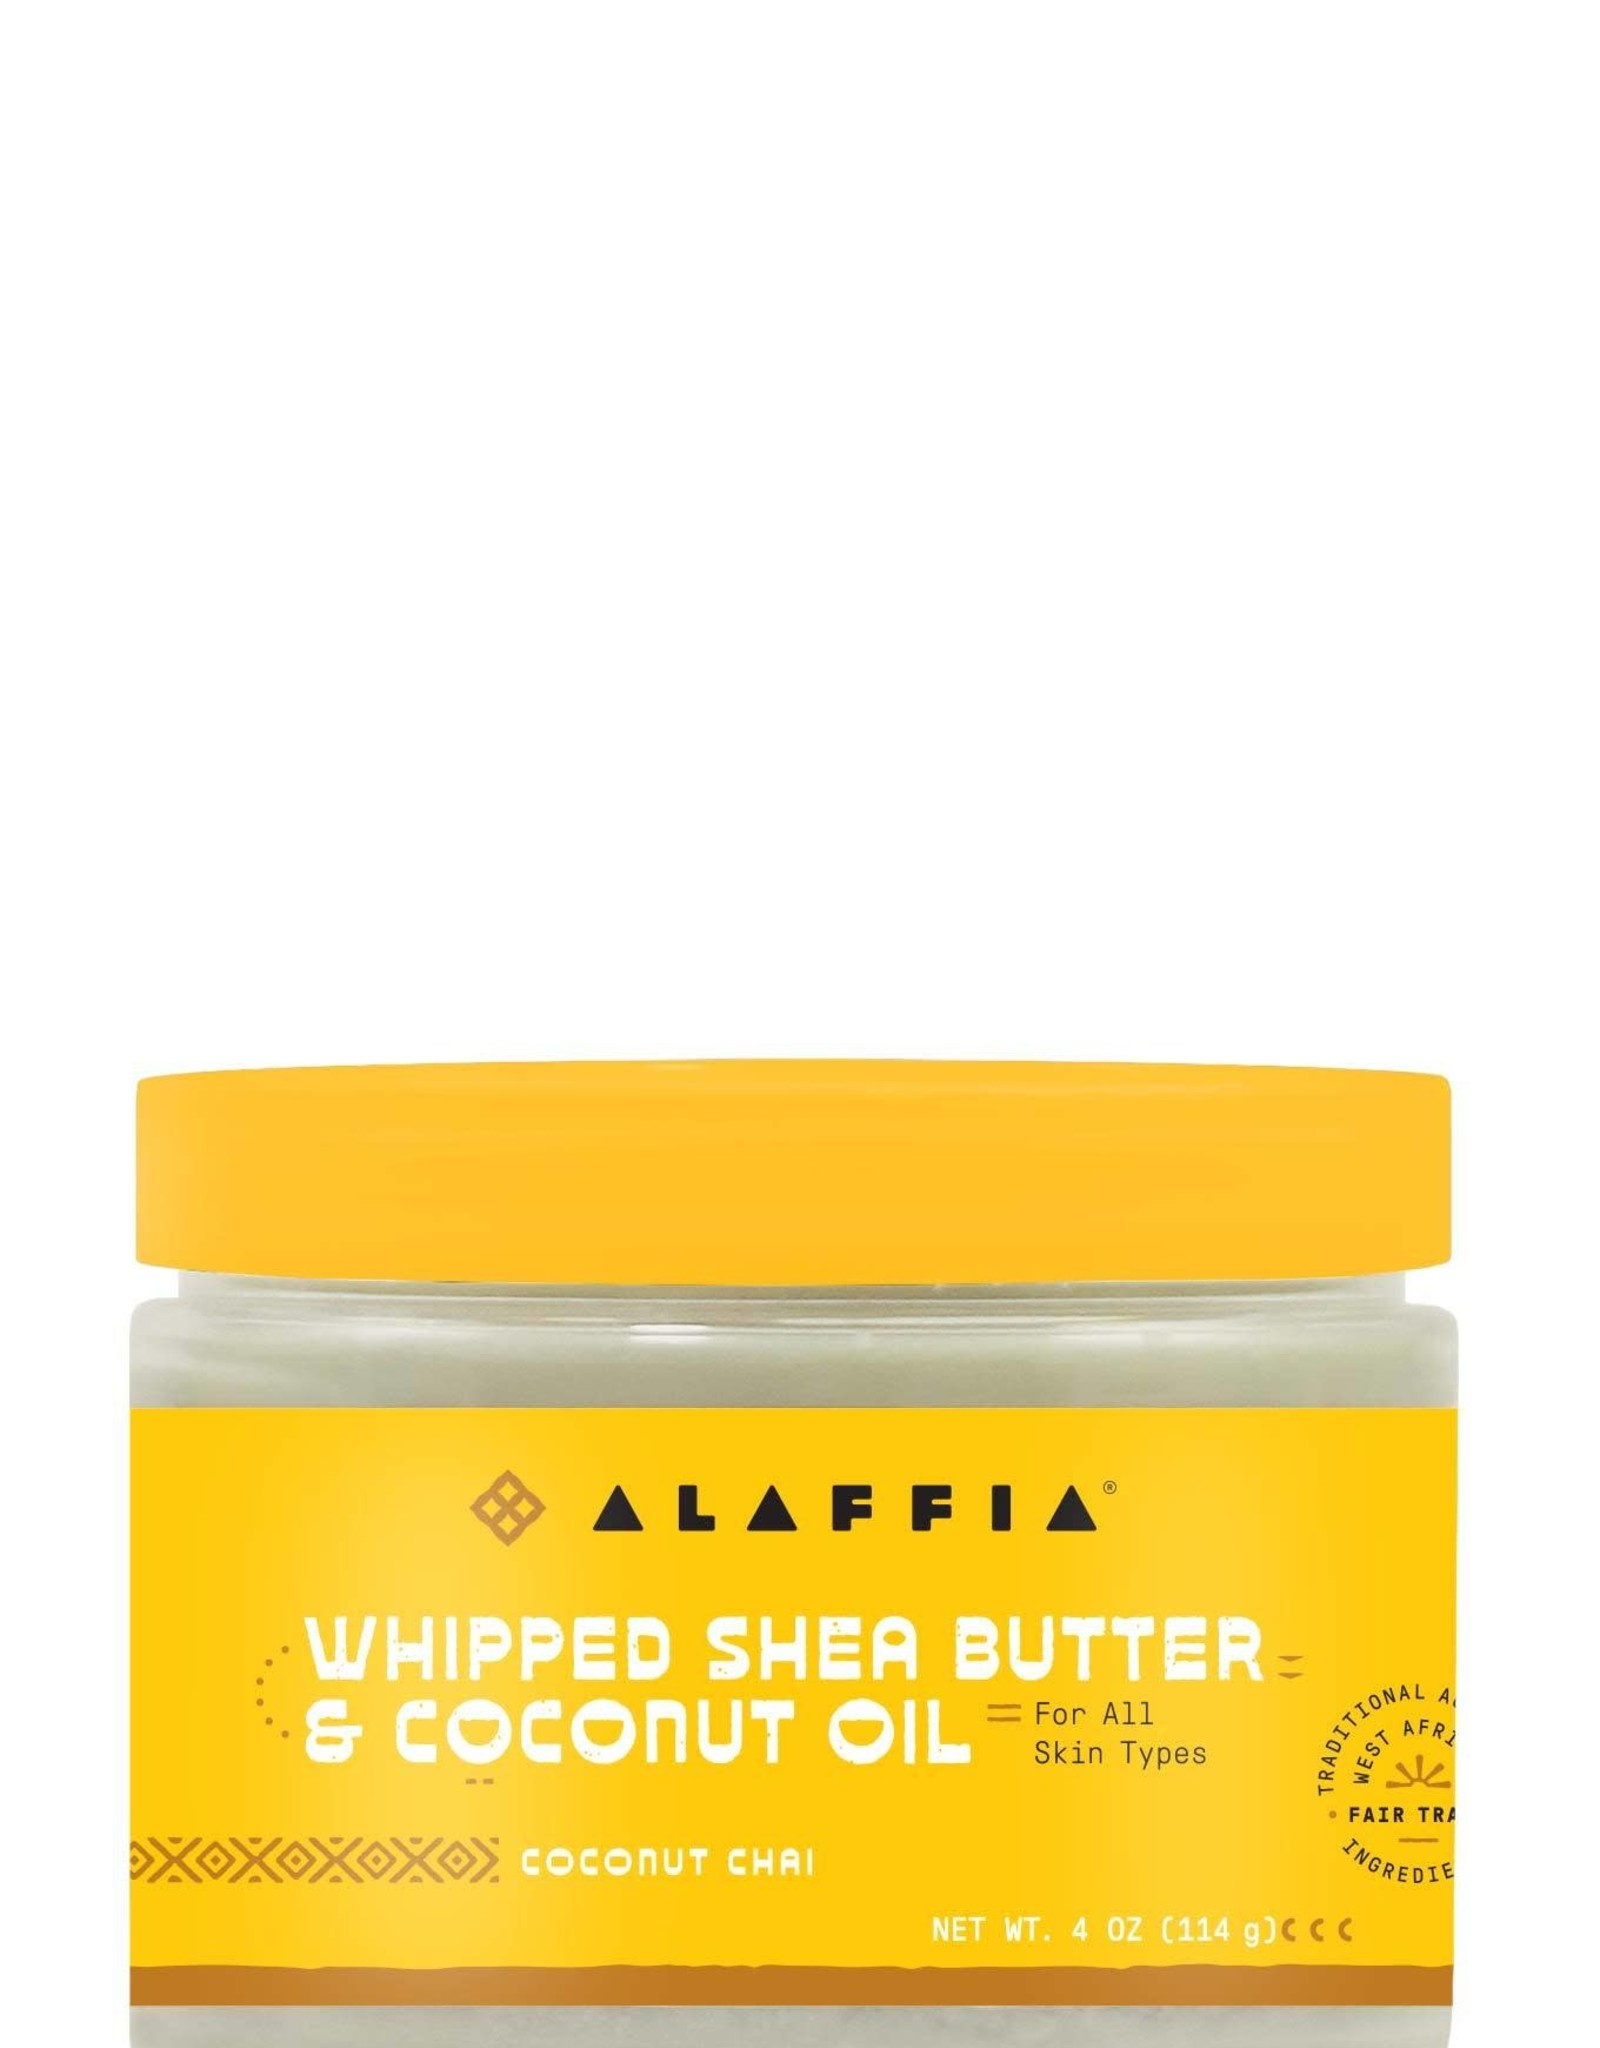 Alaffia Whipped Shea Butter and Coconut Oil  Coconut Chai 4 oz